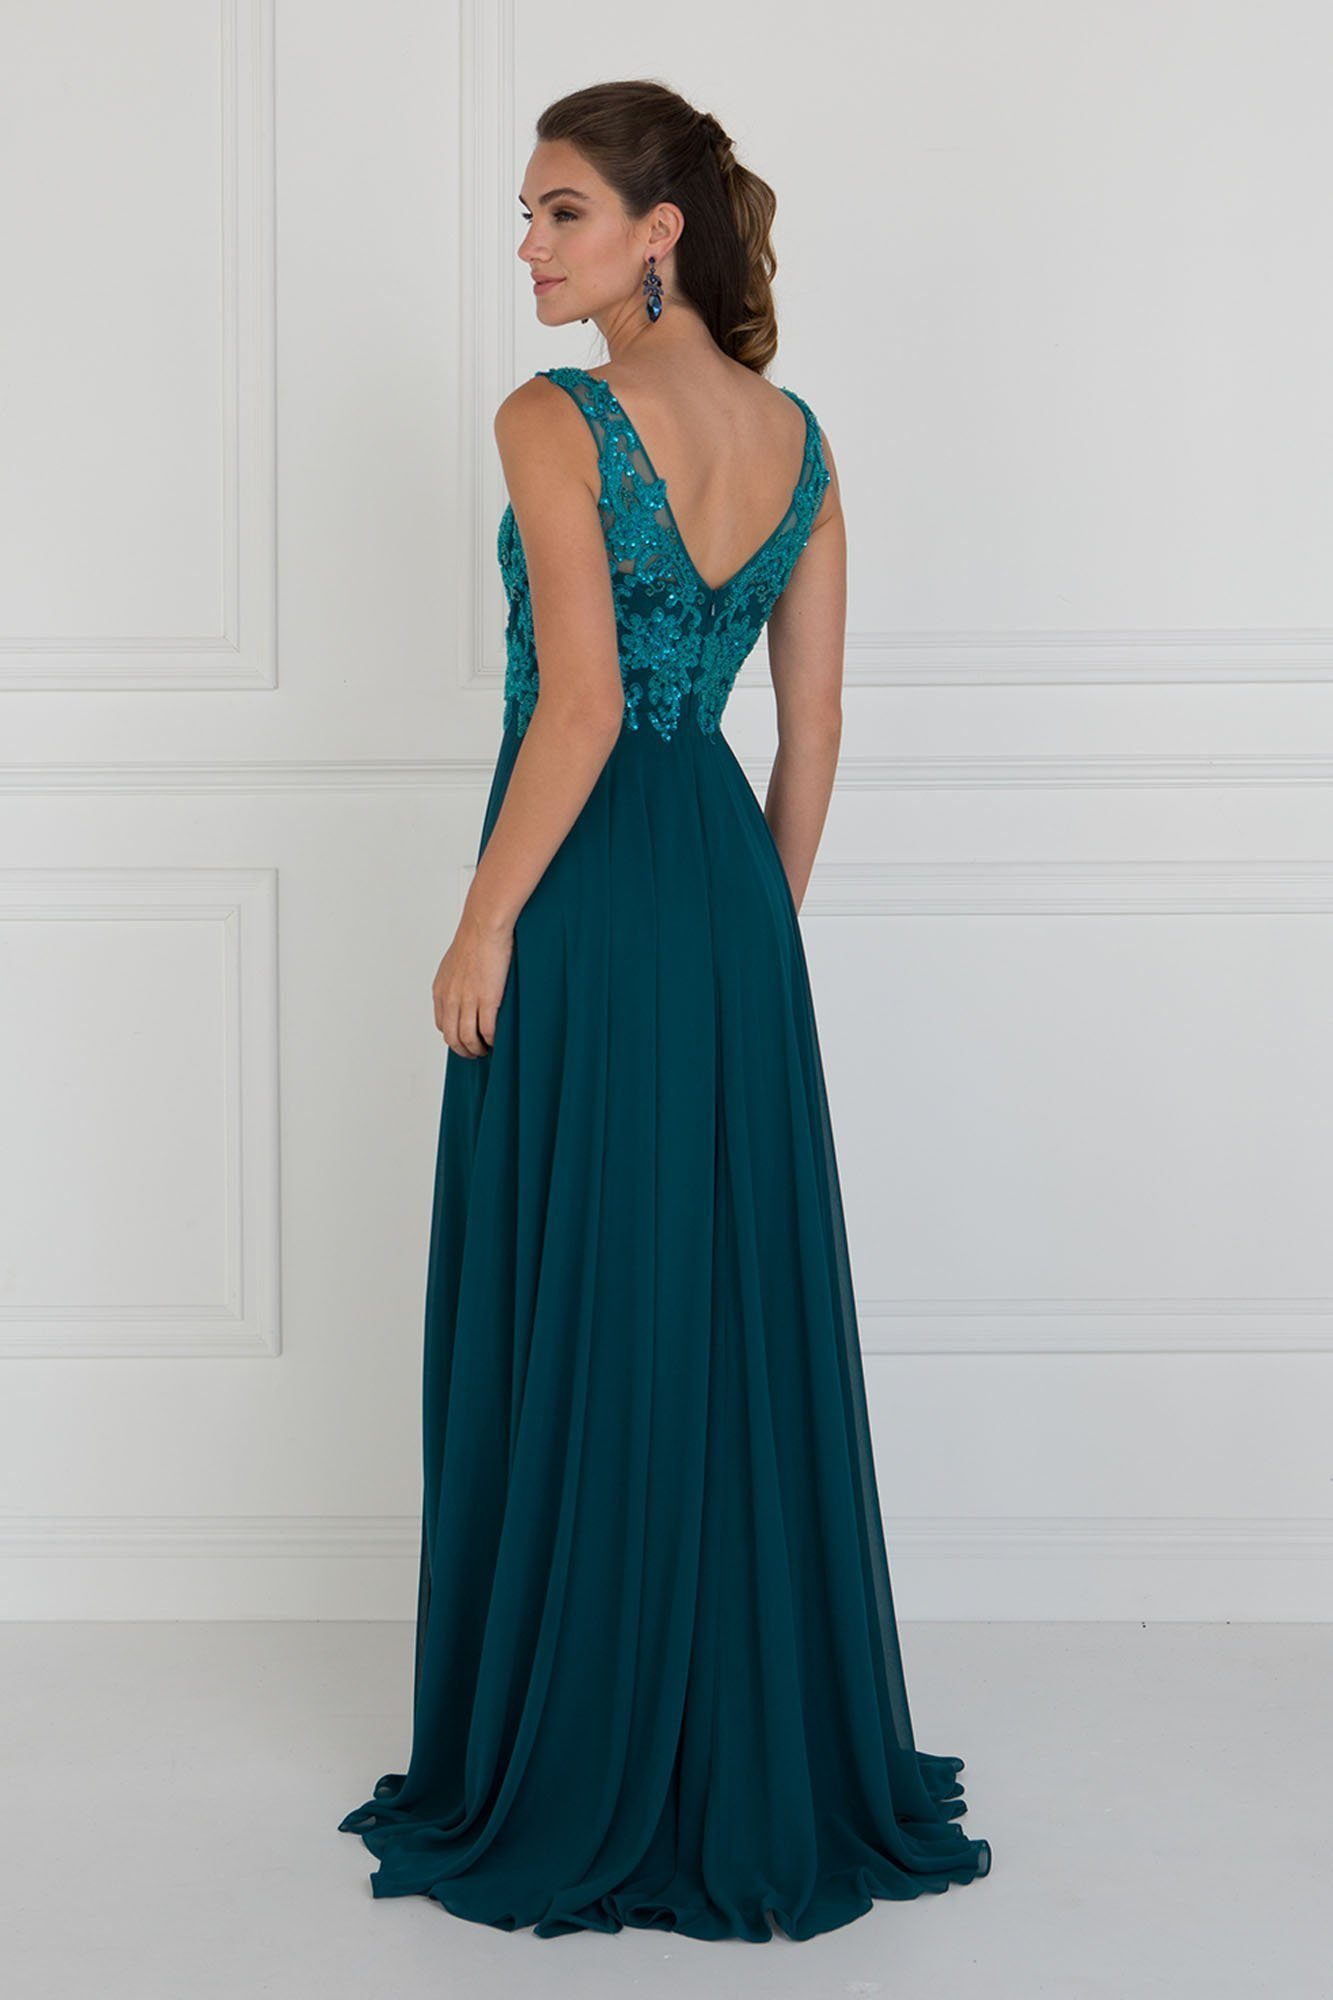 Long evening gown & prom dress – Simply Fab Dress